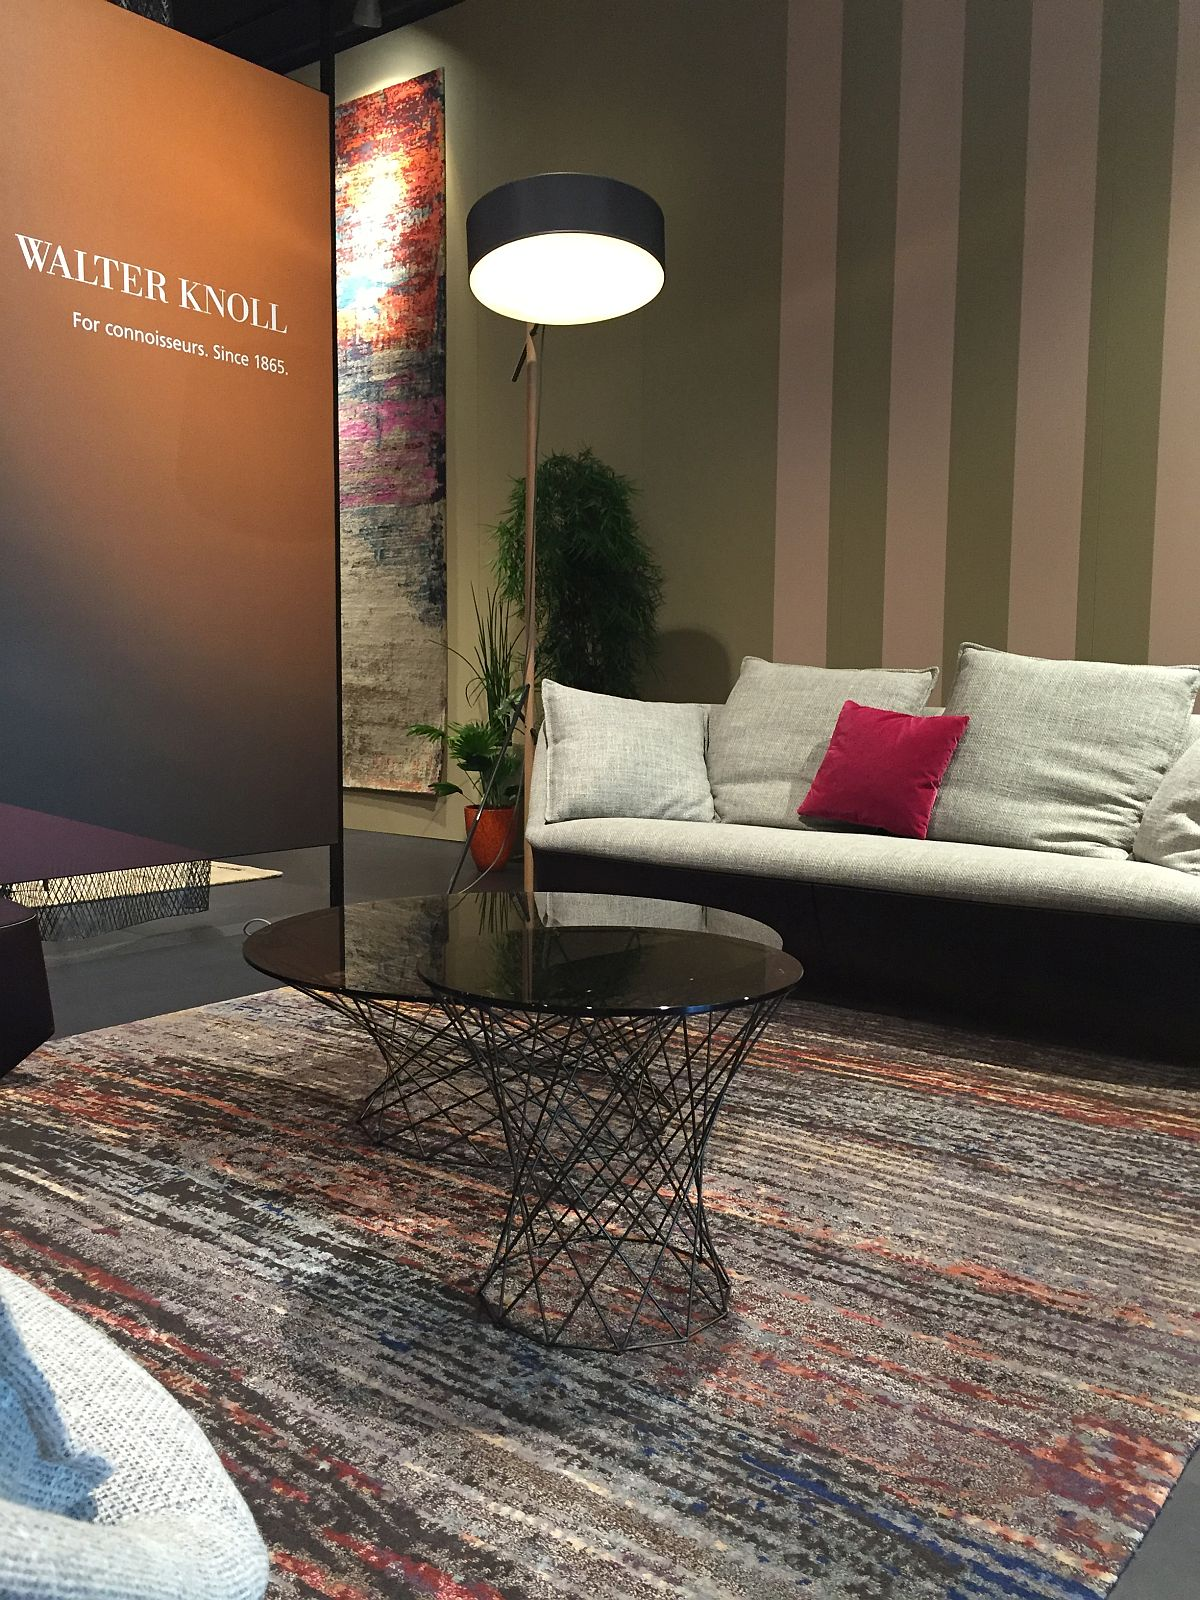 Coffee tables and couch from Walter Knoll at Salone del Mobile 2016